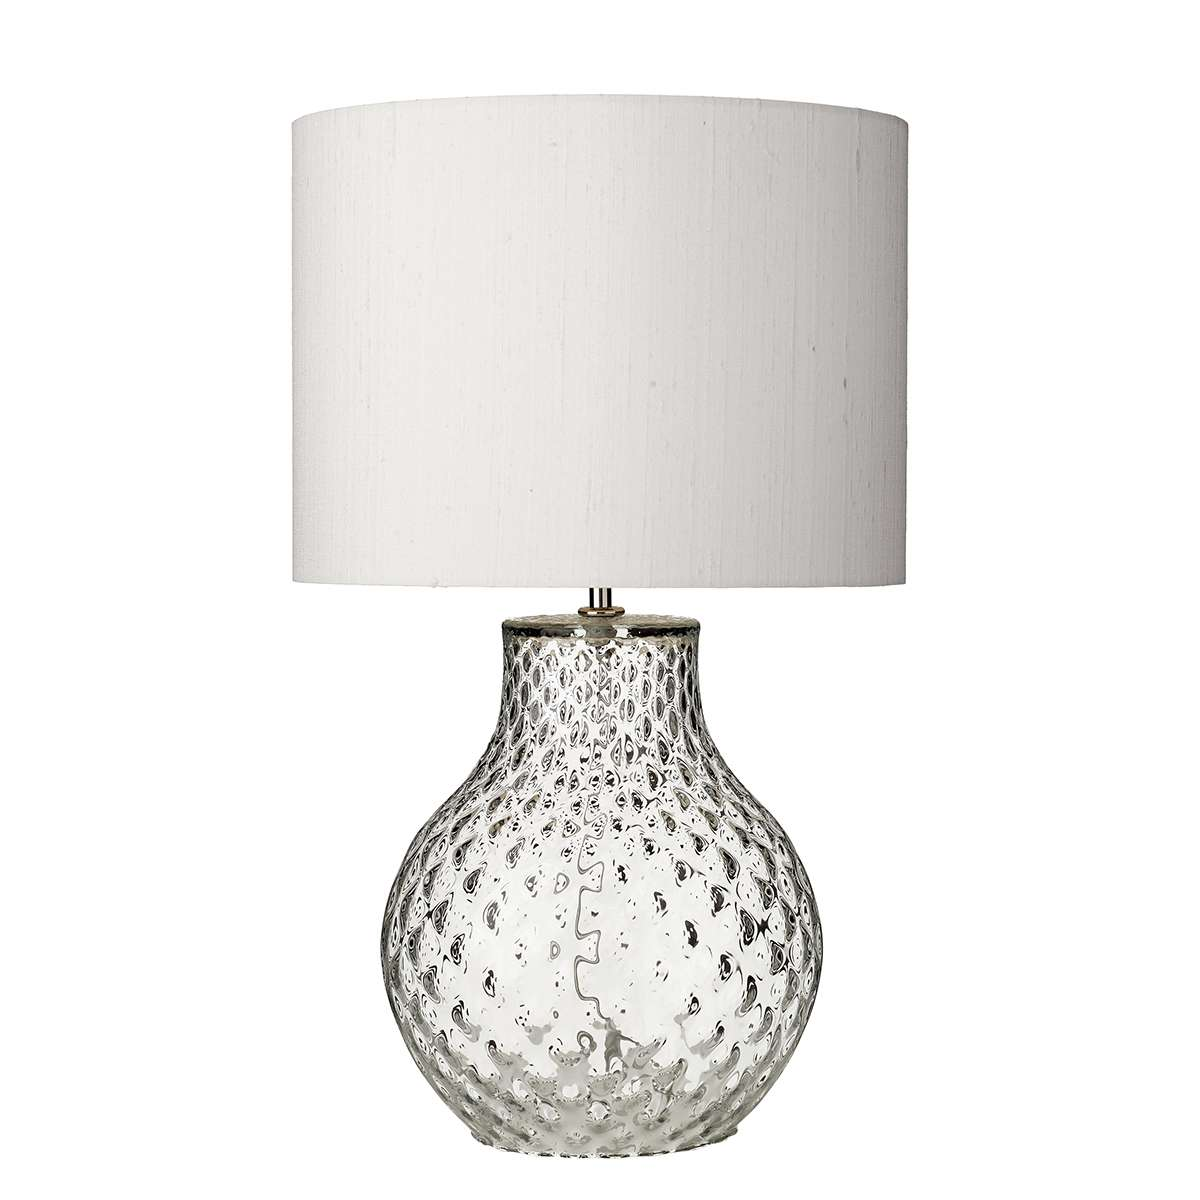 Azores Small Clear Dimpled Table Lamp Base Only